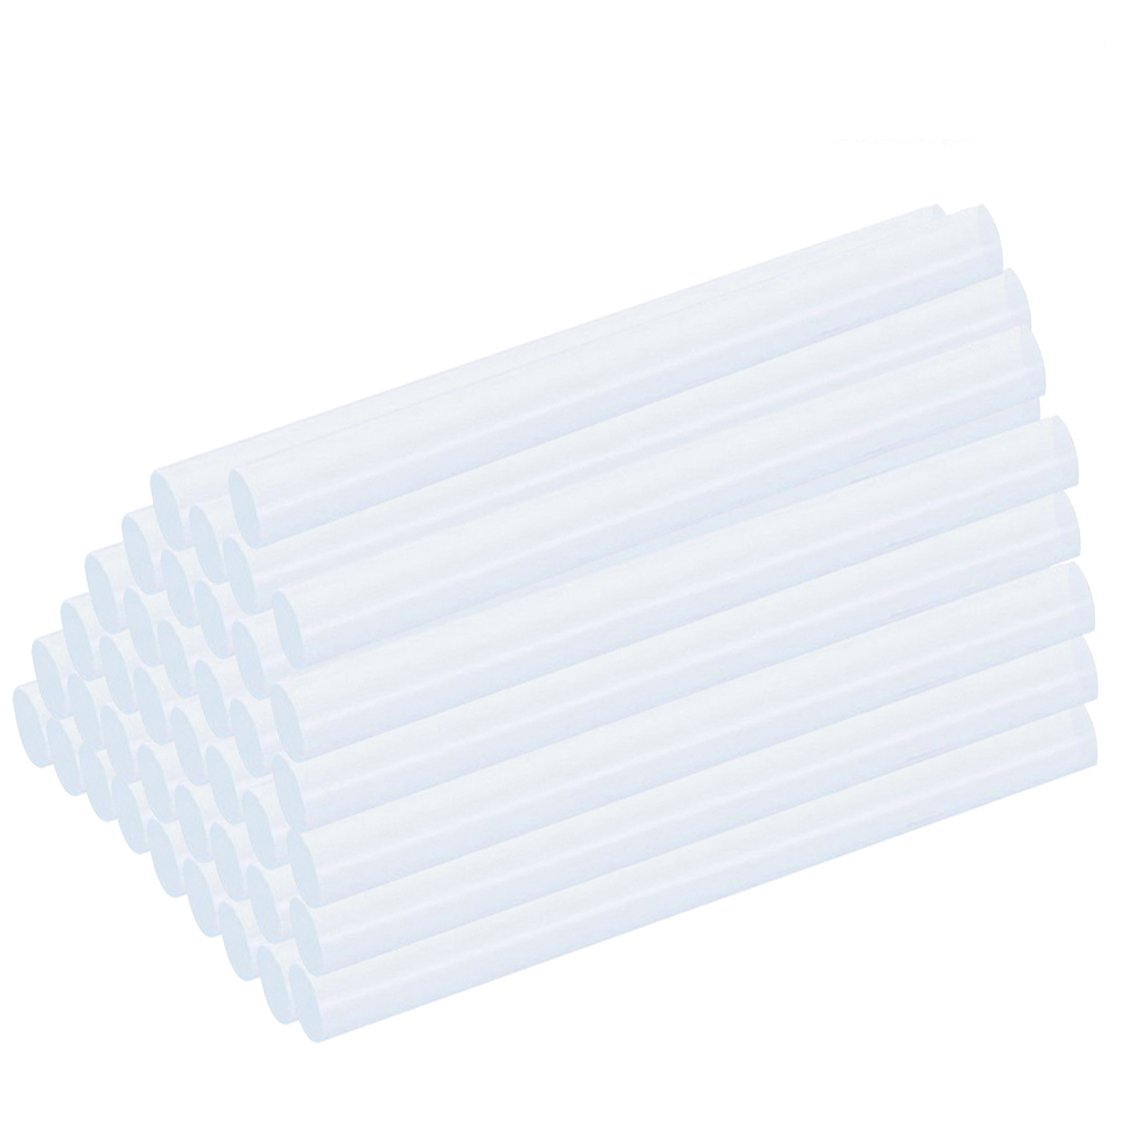 BAtech 40 Pcs 11X 200mm Long Size Strong Adhesive Glue Sticks for Trigger Electic Hot Melt Glue Gun Sticks BAtech Co. Ltd